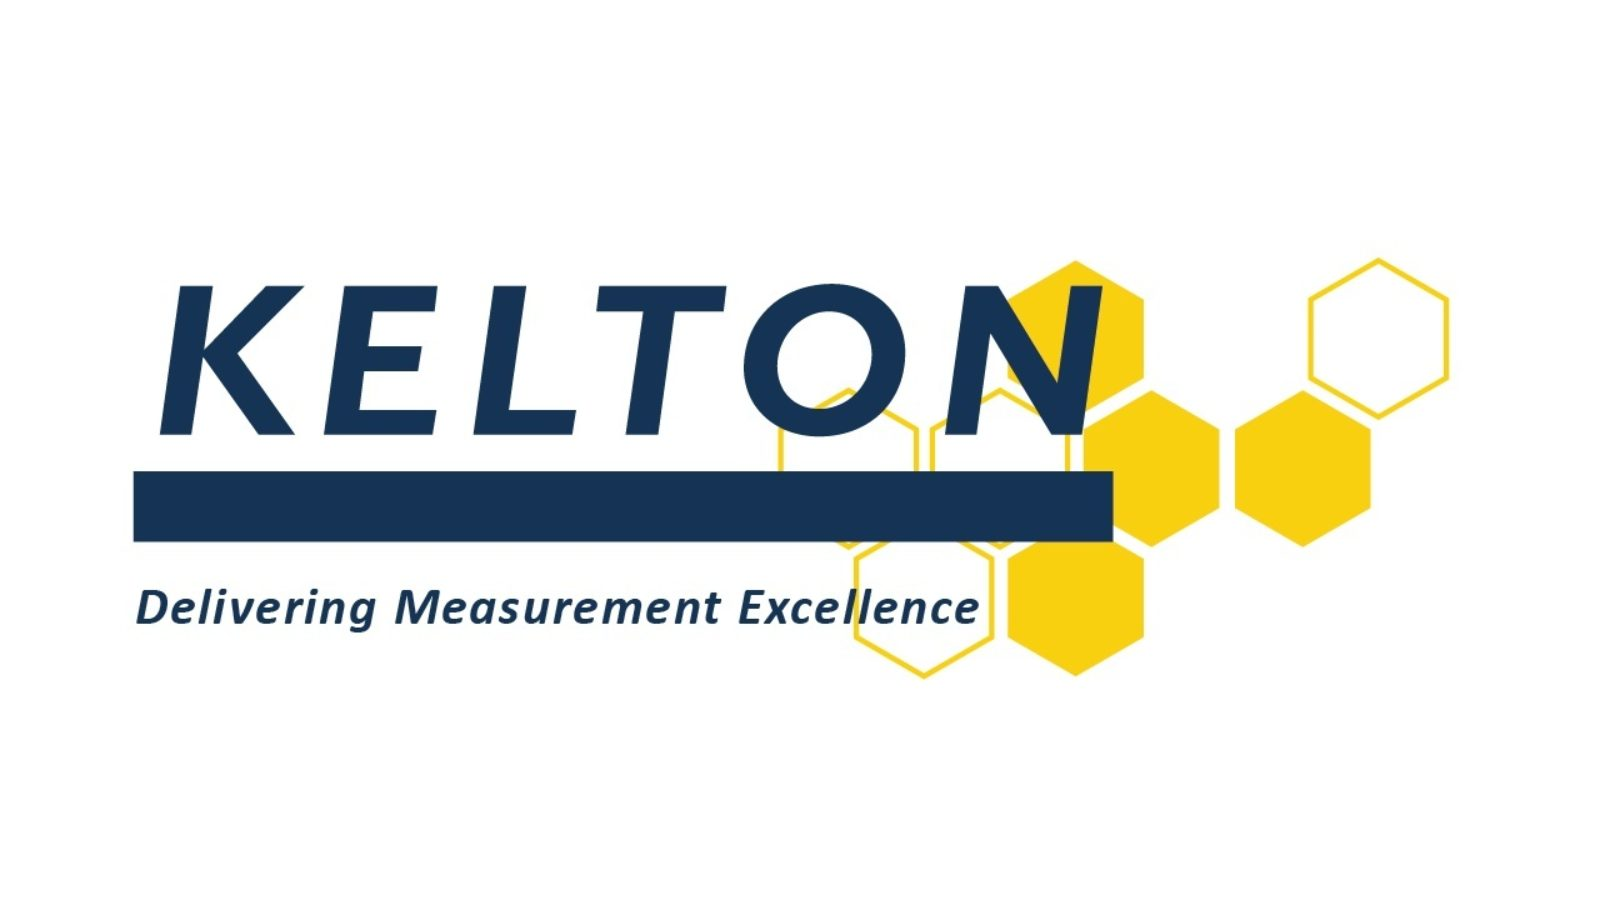 KELTON secures contract for measurement support